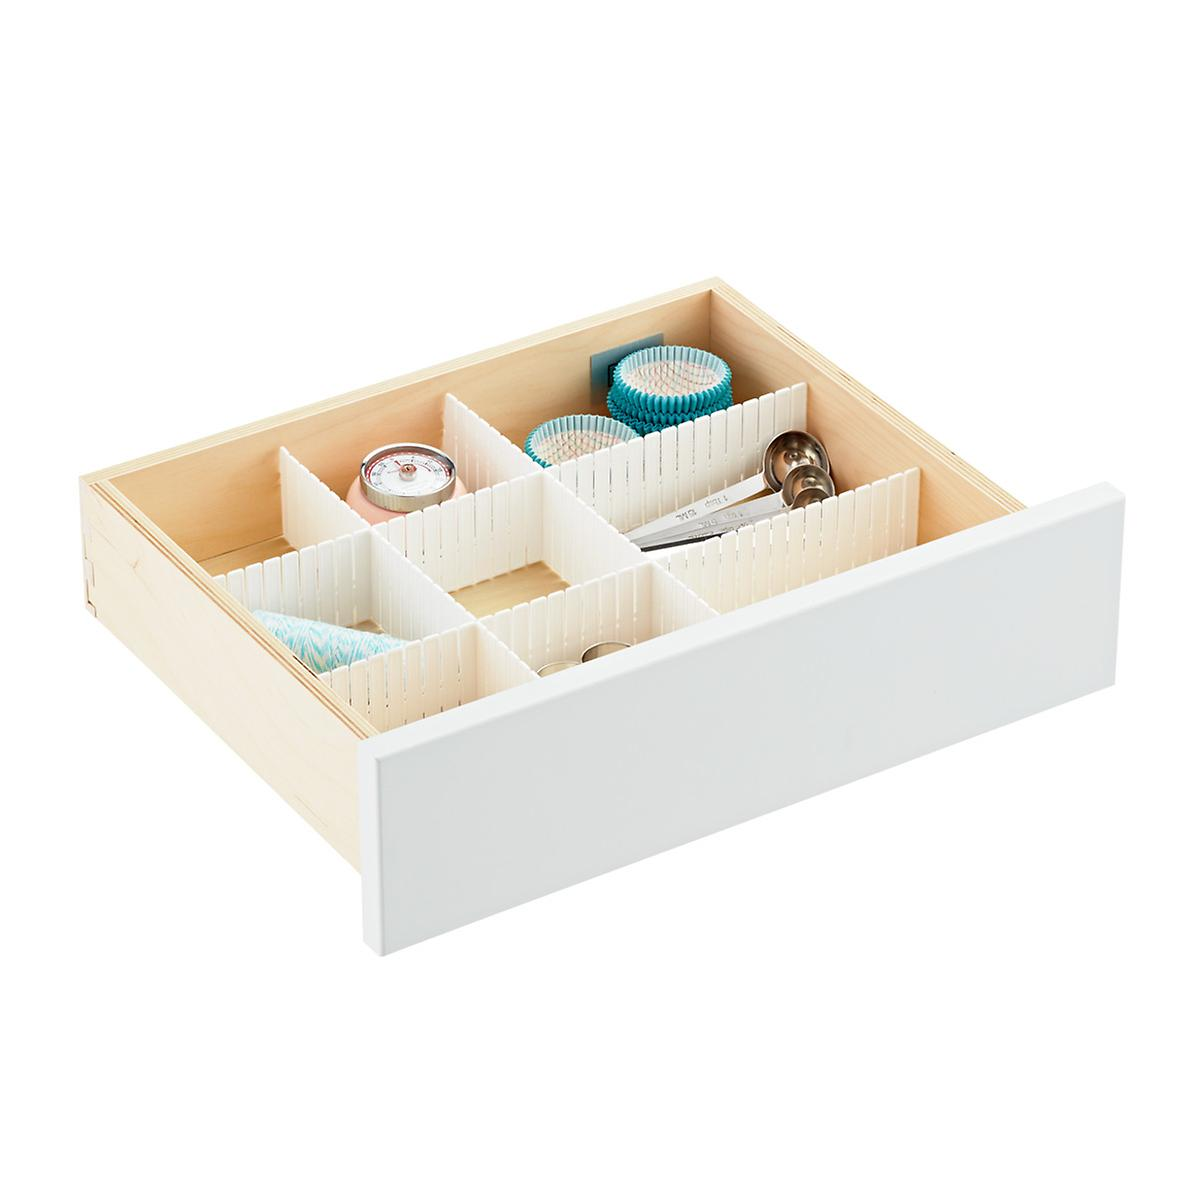 Slotted Interlocking Drawer Organizers The Container Store